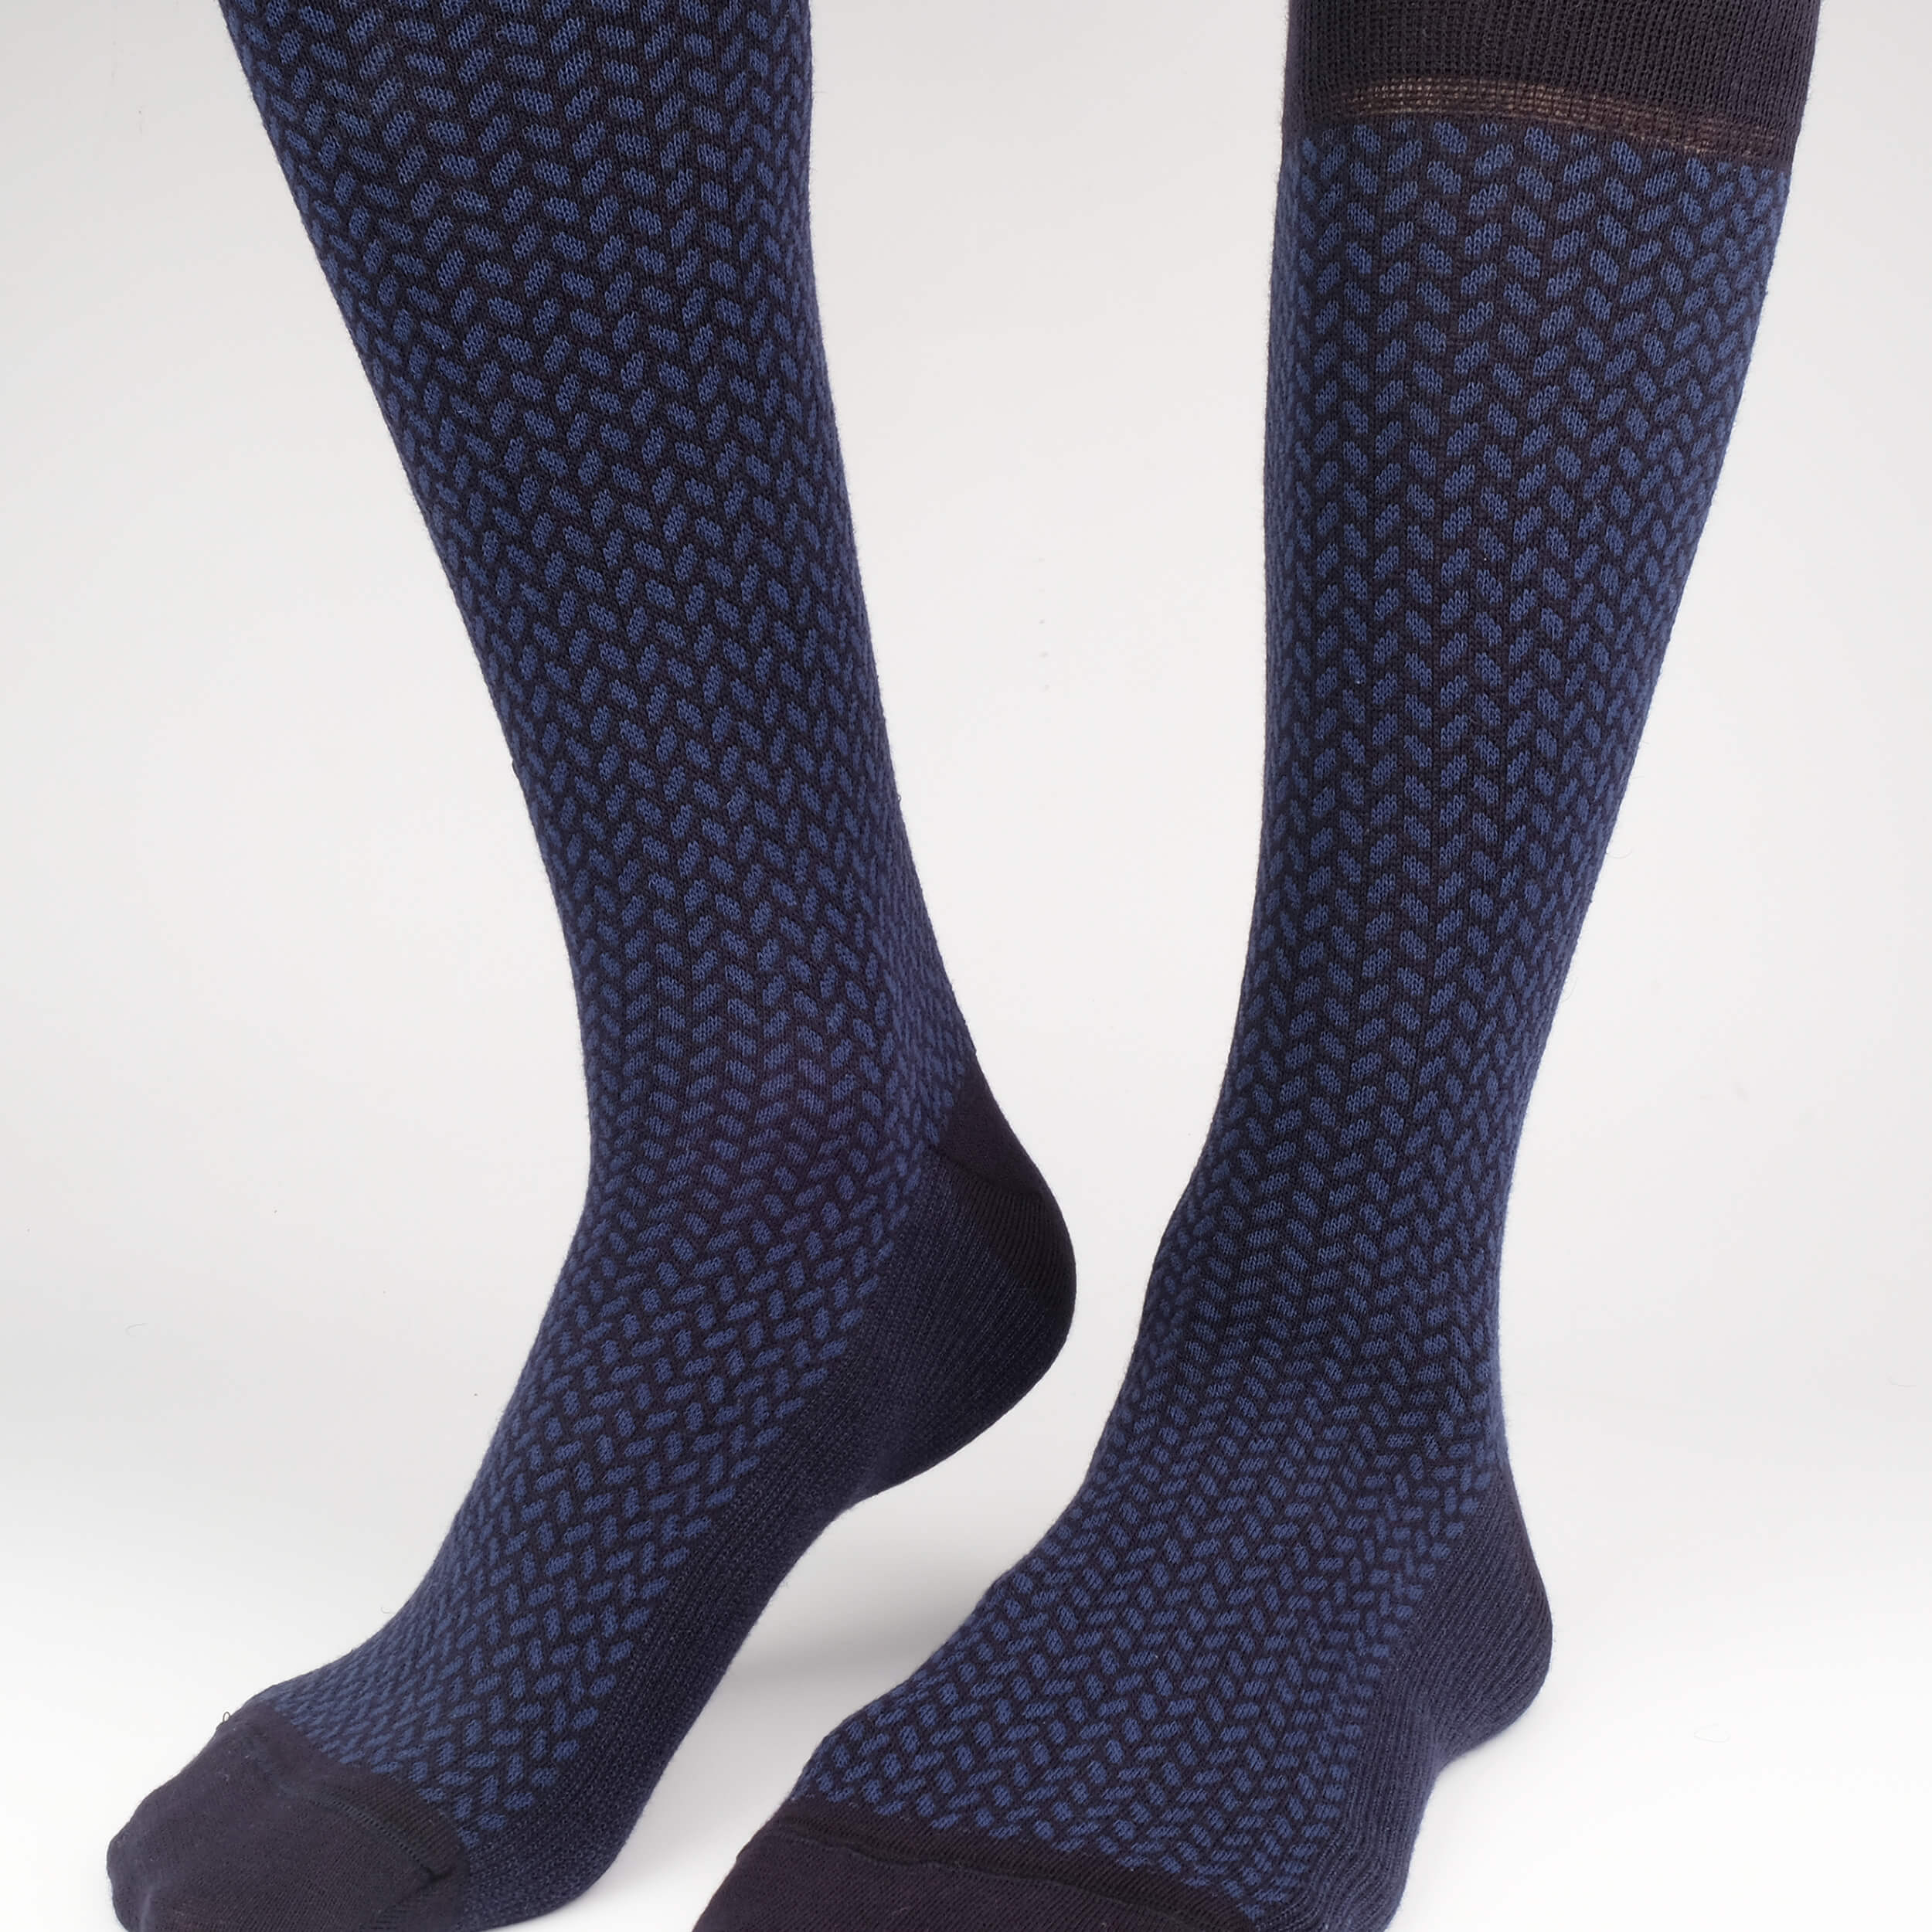 Mens Socks - Herringbone Blocks Men's Socks - Blue⎪Etiquette Clothiers